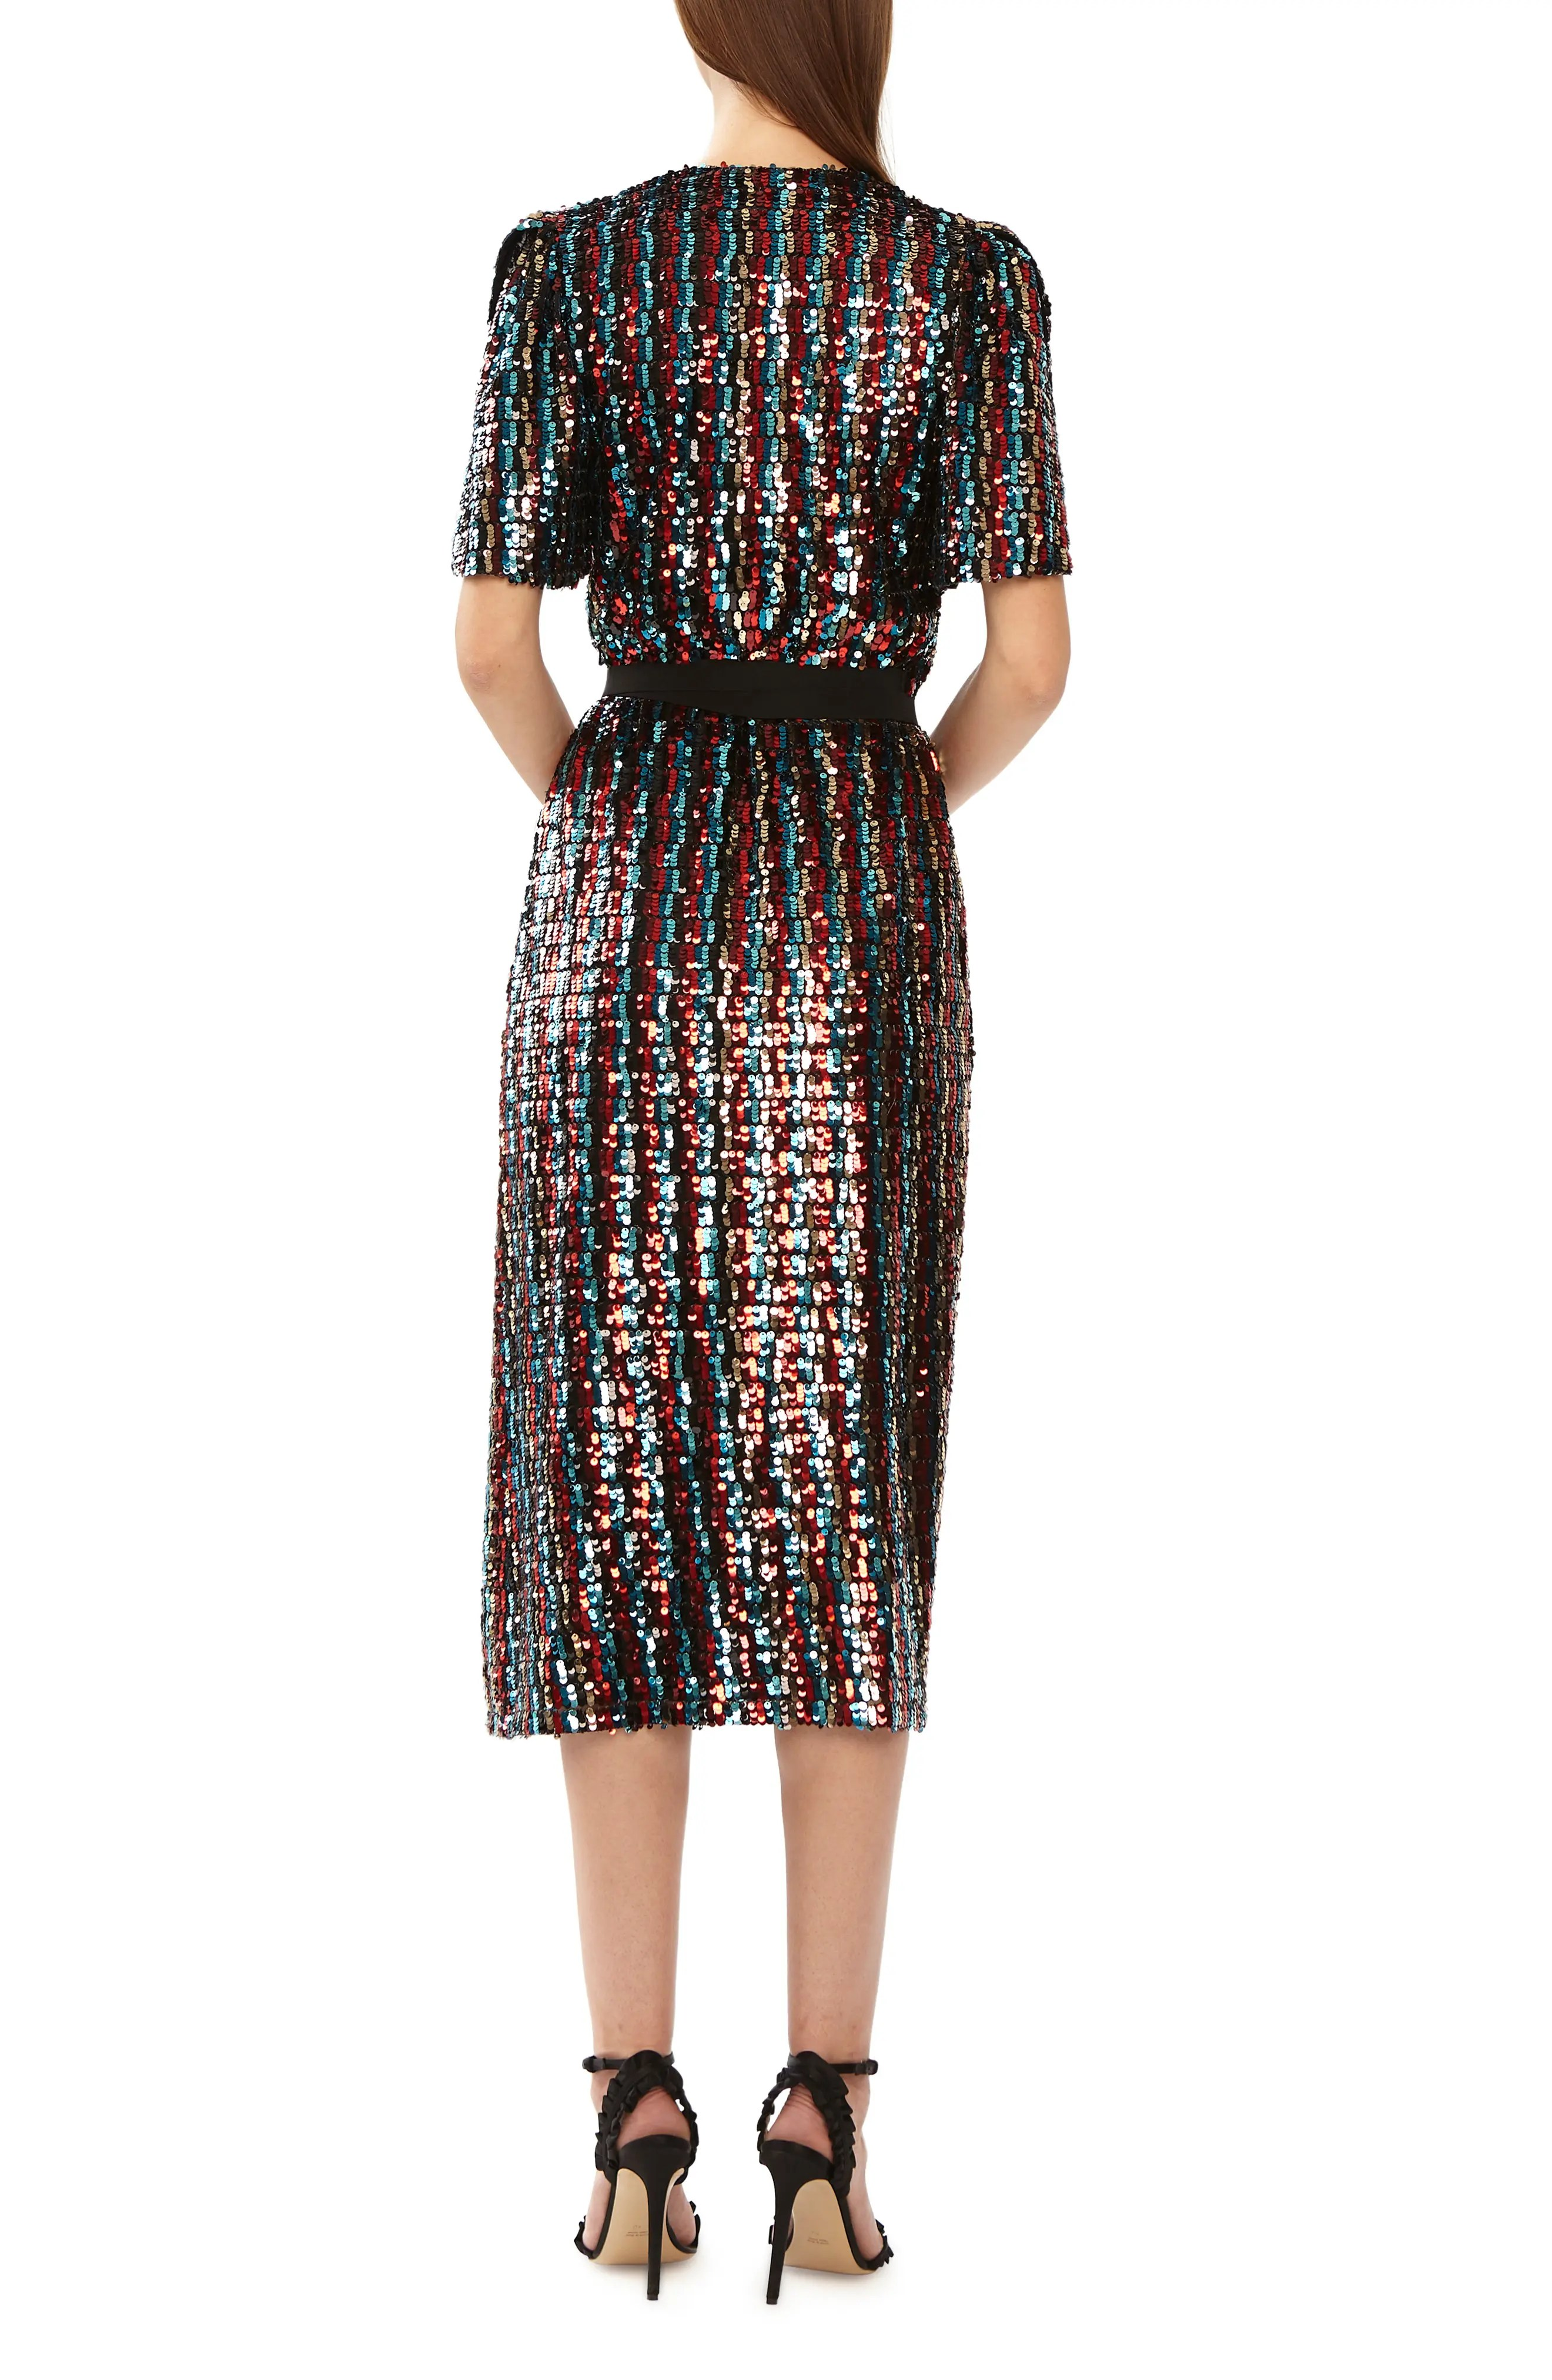 Handson Kweekkas Serre Women S Ml Monique Lhuillier Clothing Nordstrom